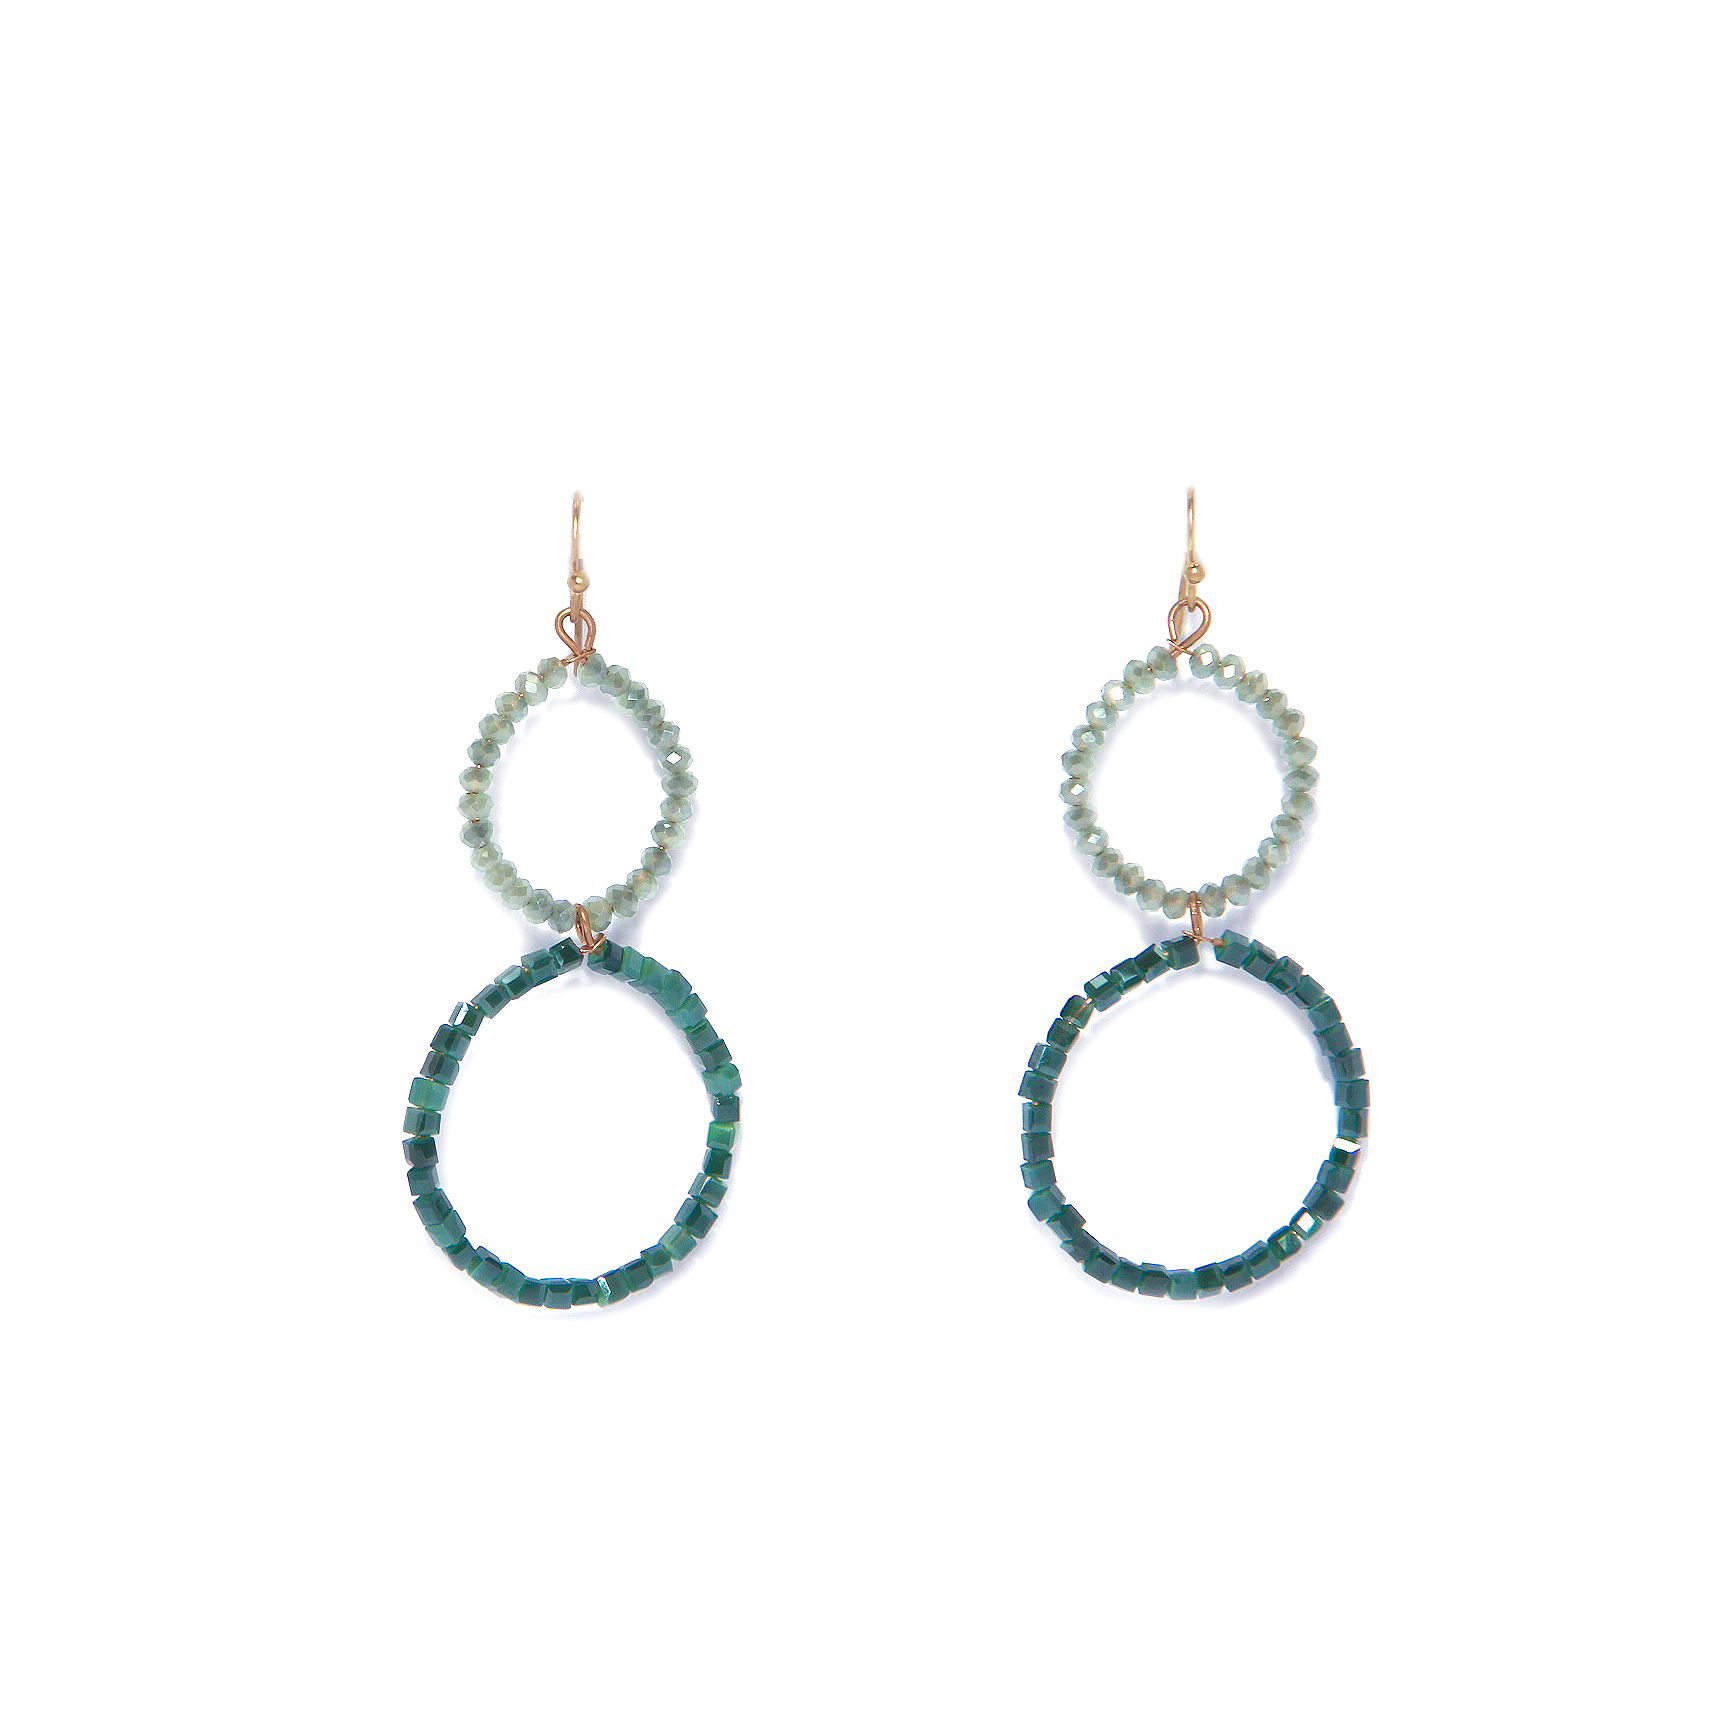 Envy Beaded Earrings - mint aqua